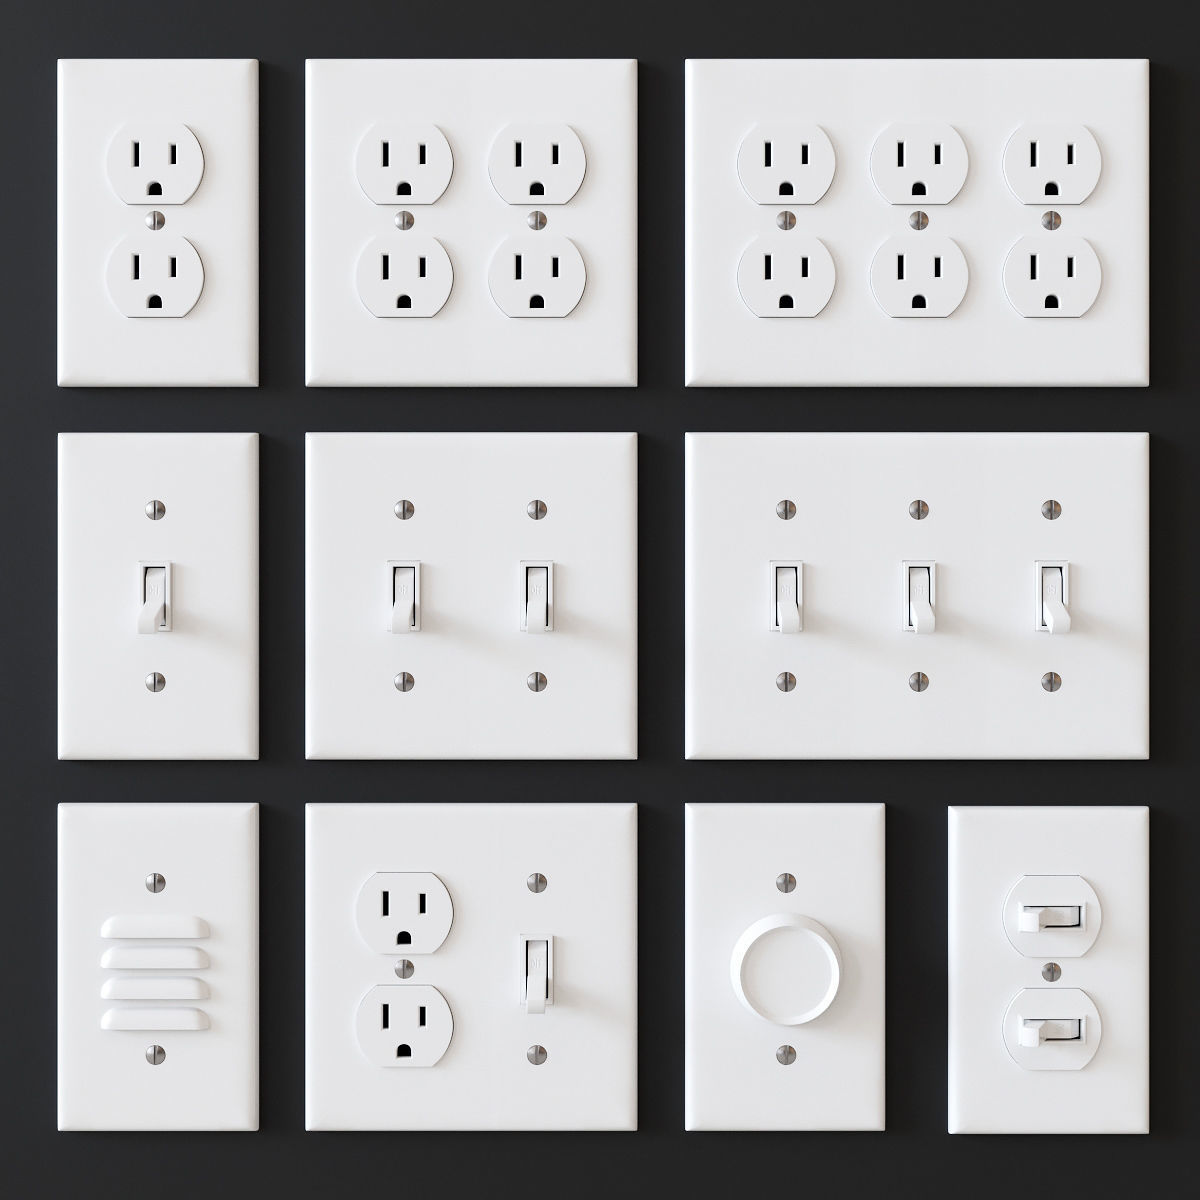 US electrical outlets and switches